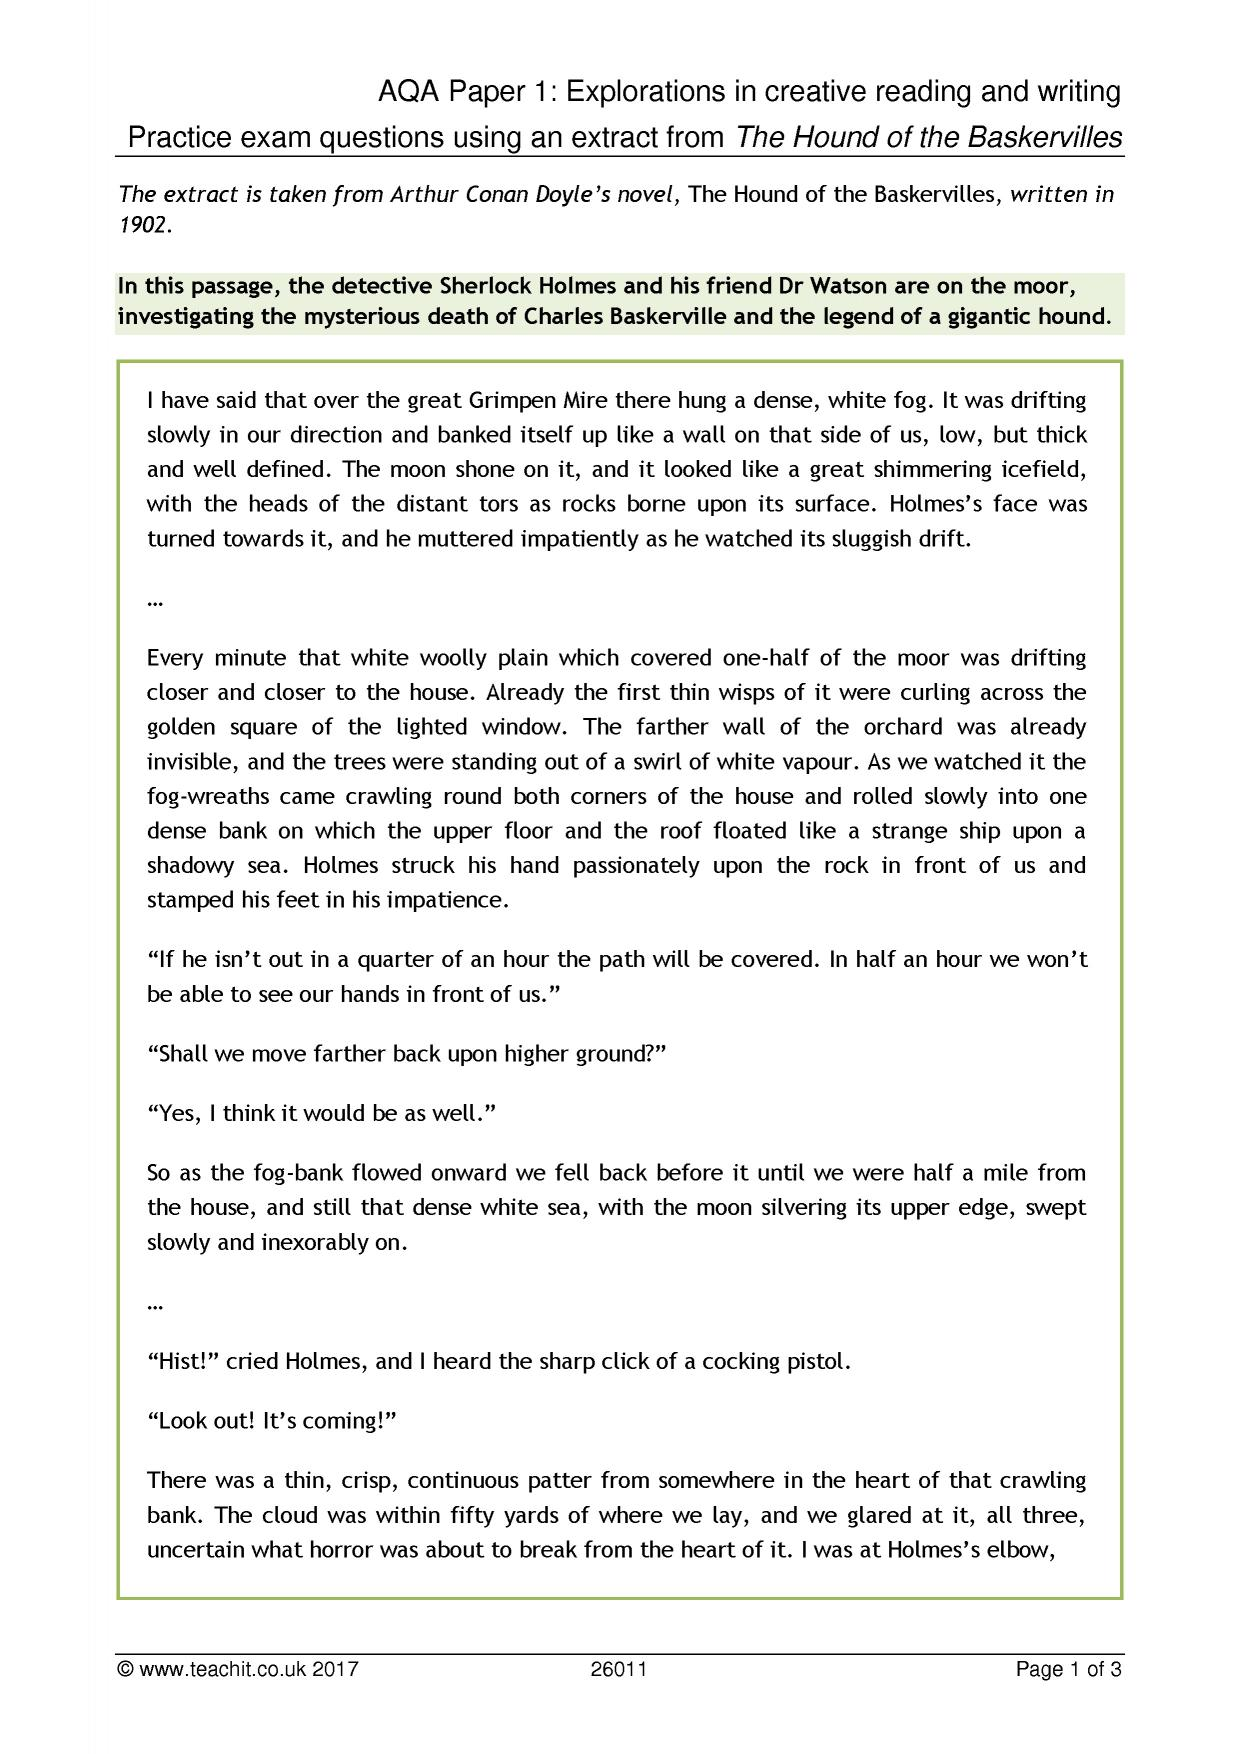 english gcse essay How do you write an outstanding english essay for your gcse exam and ensure the the examiners sit up and take notice of your exam papers.